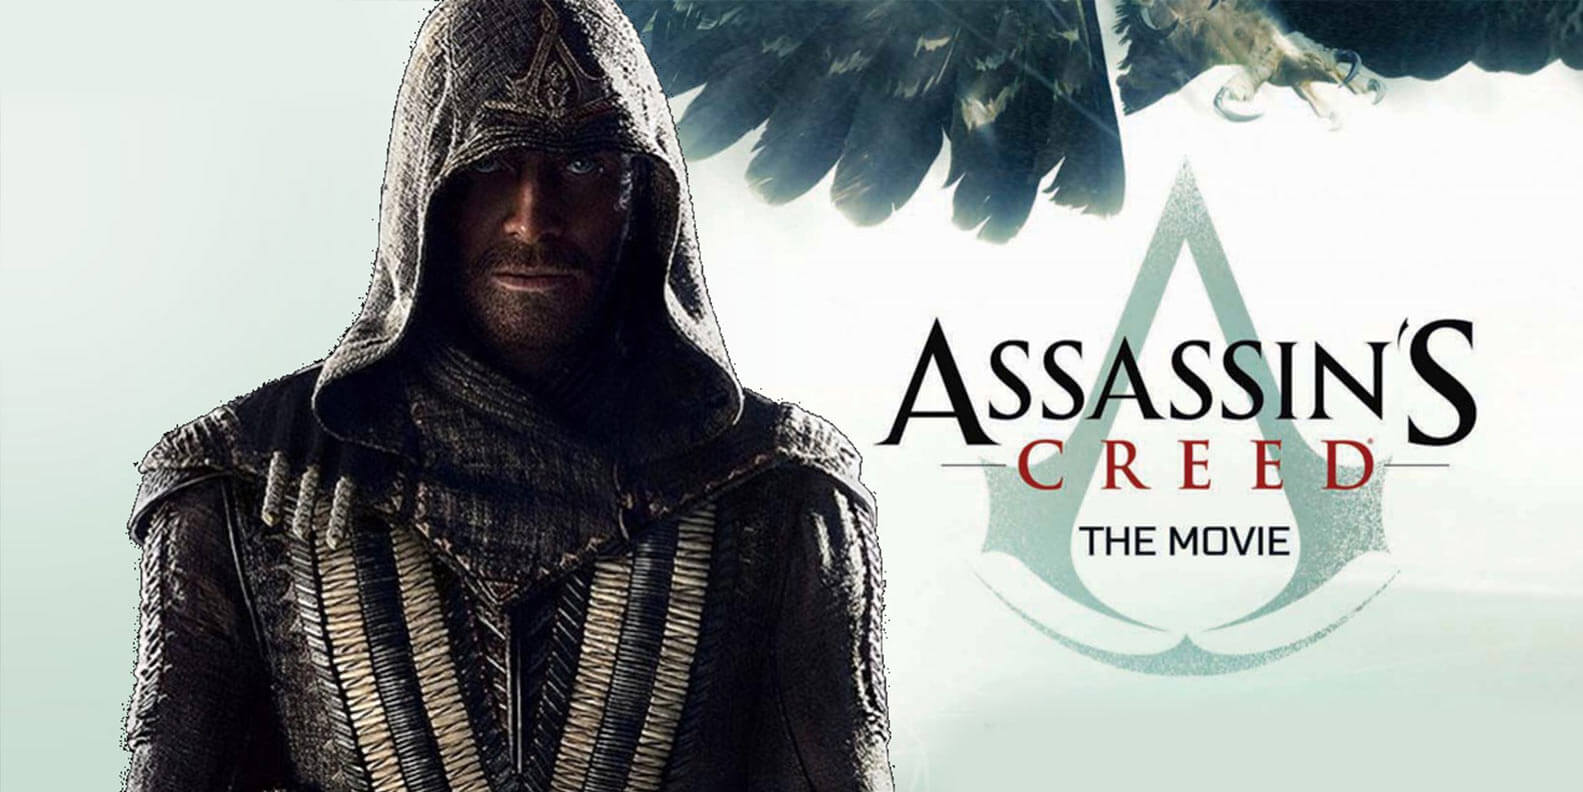 Assassin's Creed - Header Image